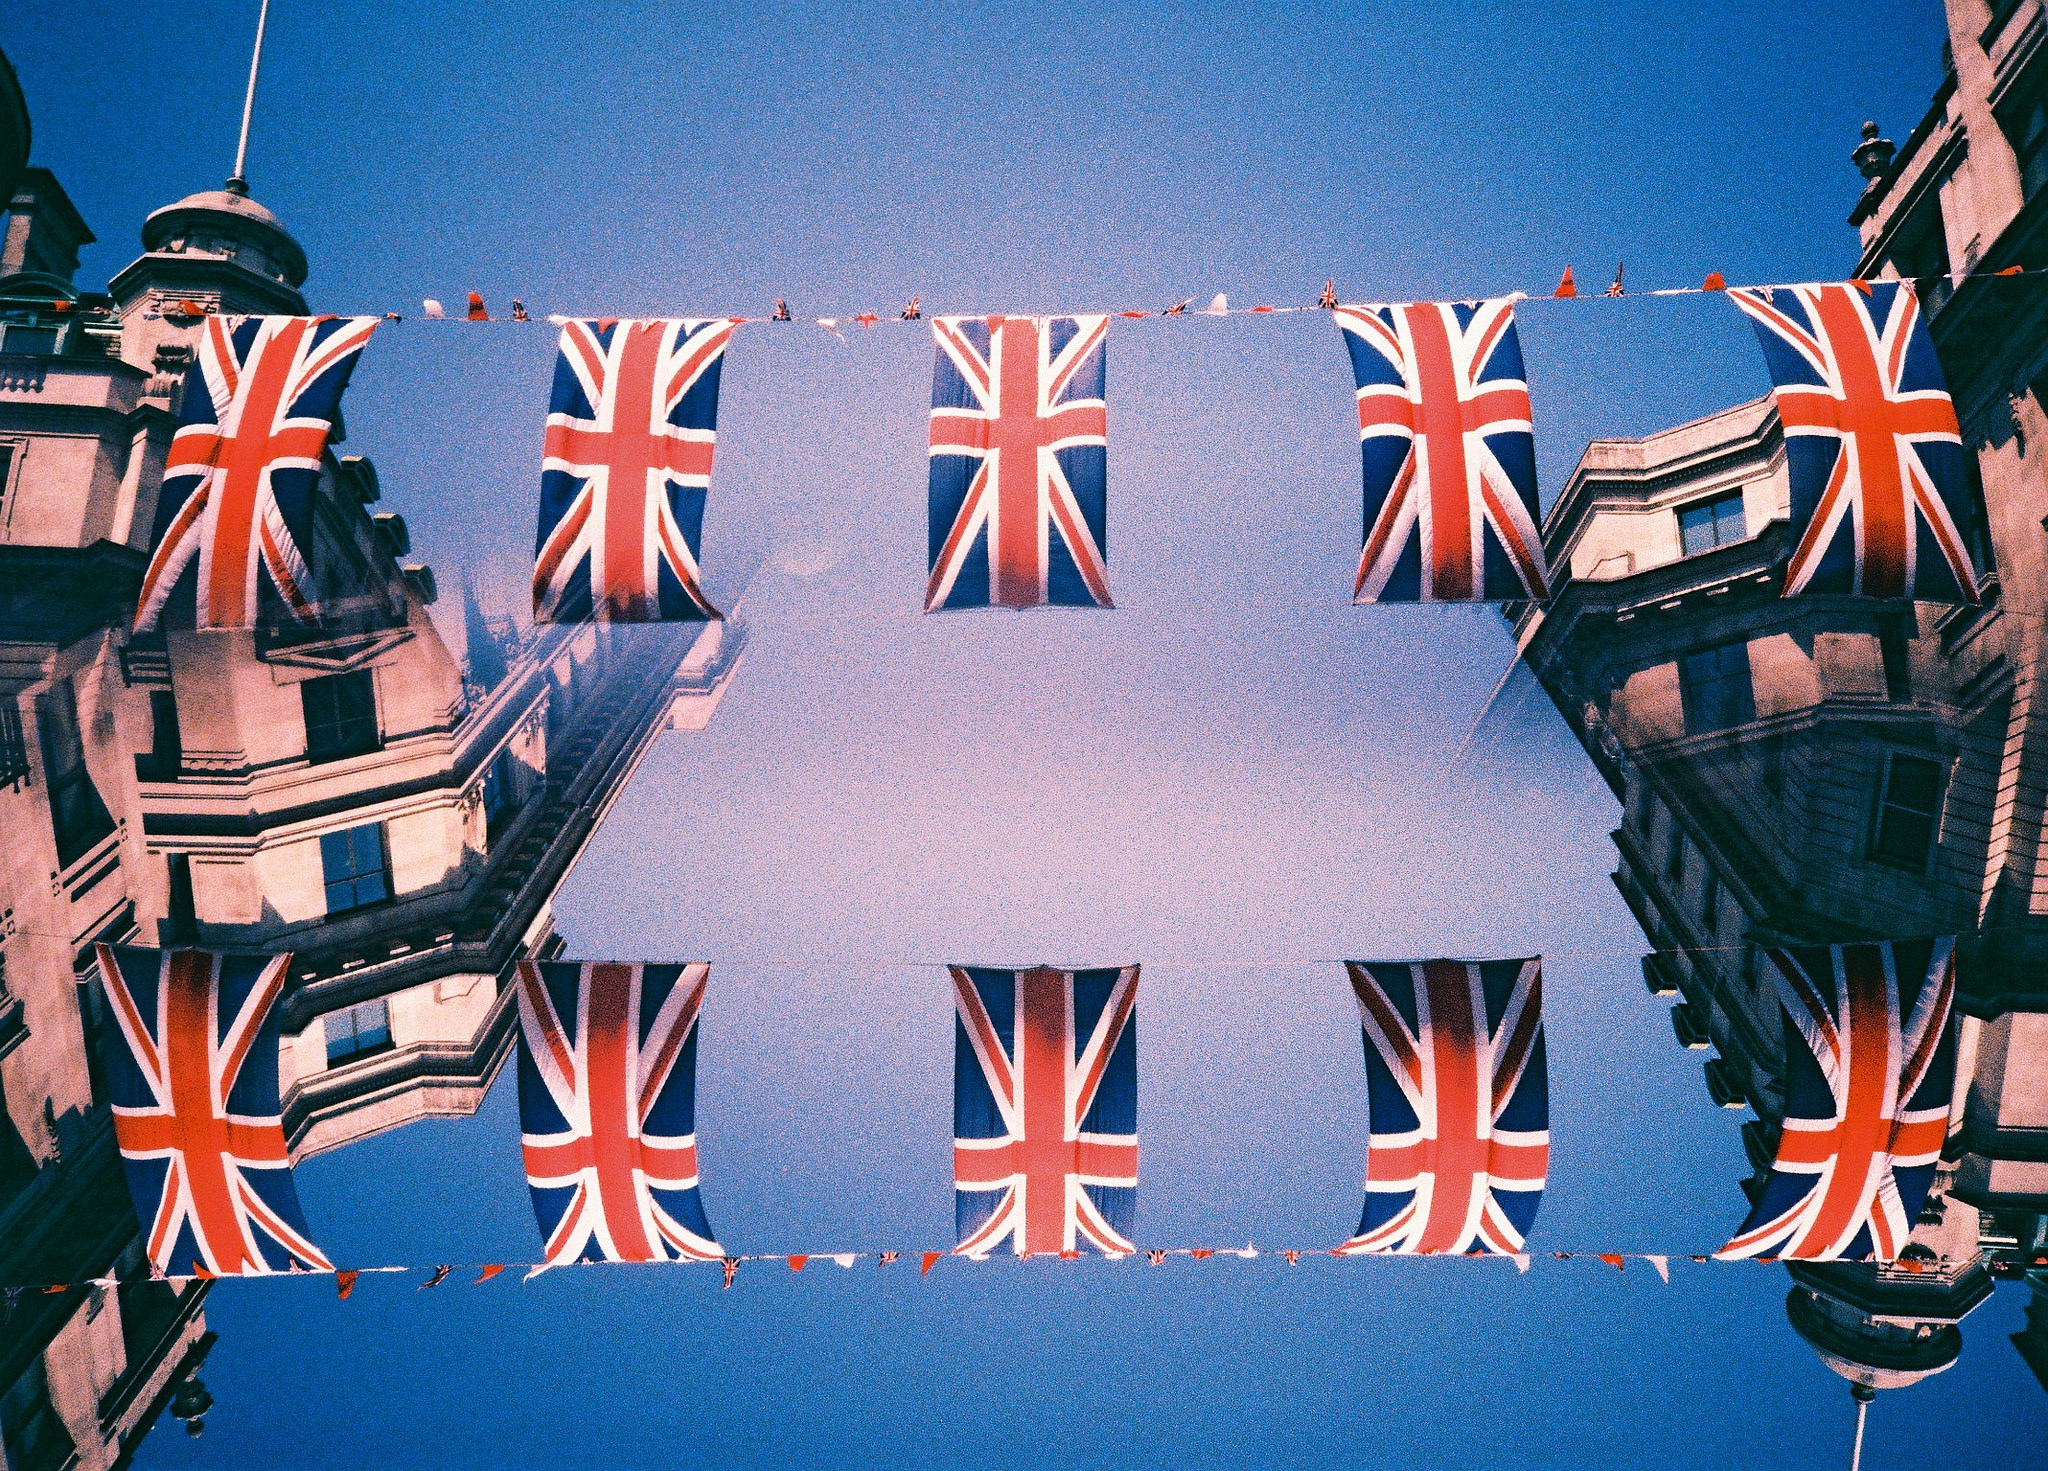 EI'S Peter Turchin say BREXIT is just a symptom of Europe's Larger Issues